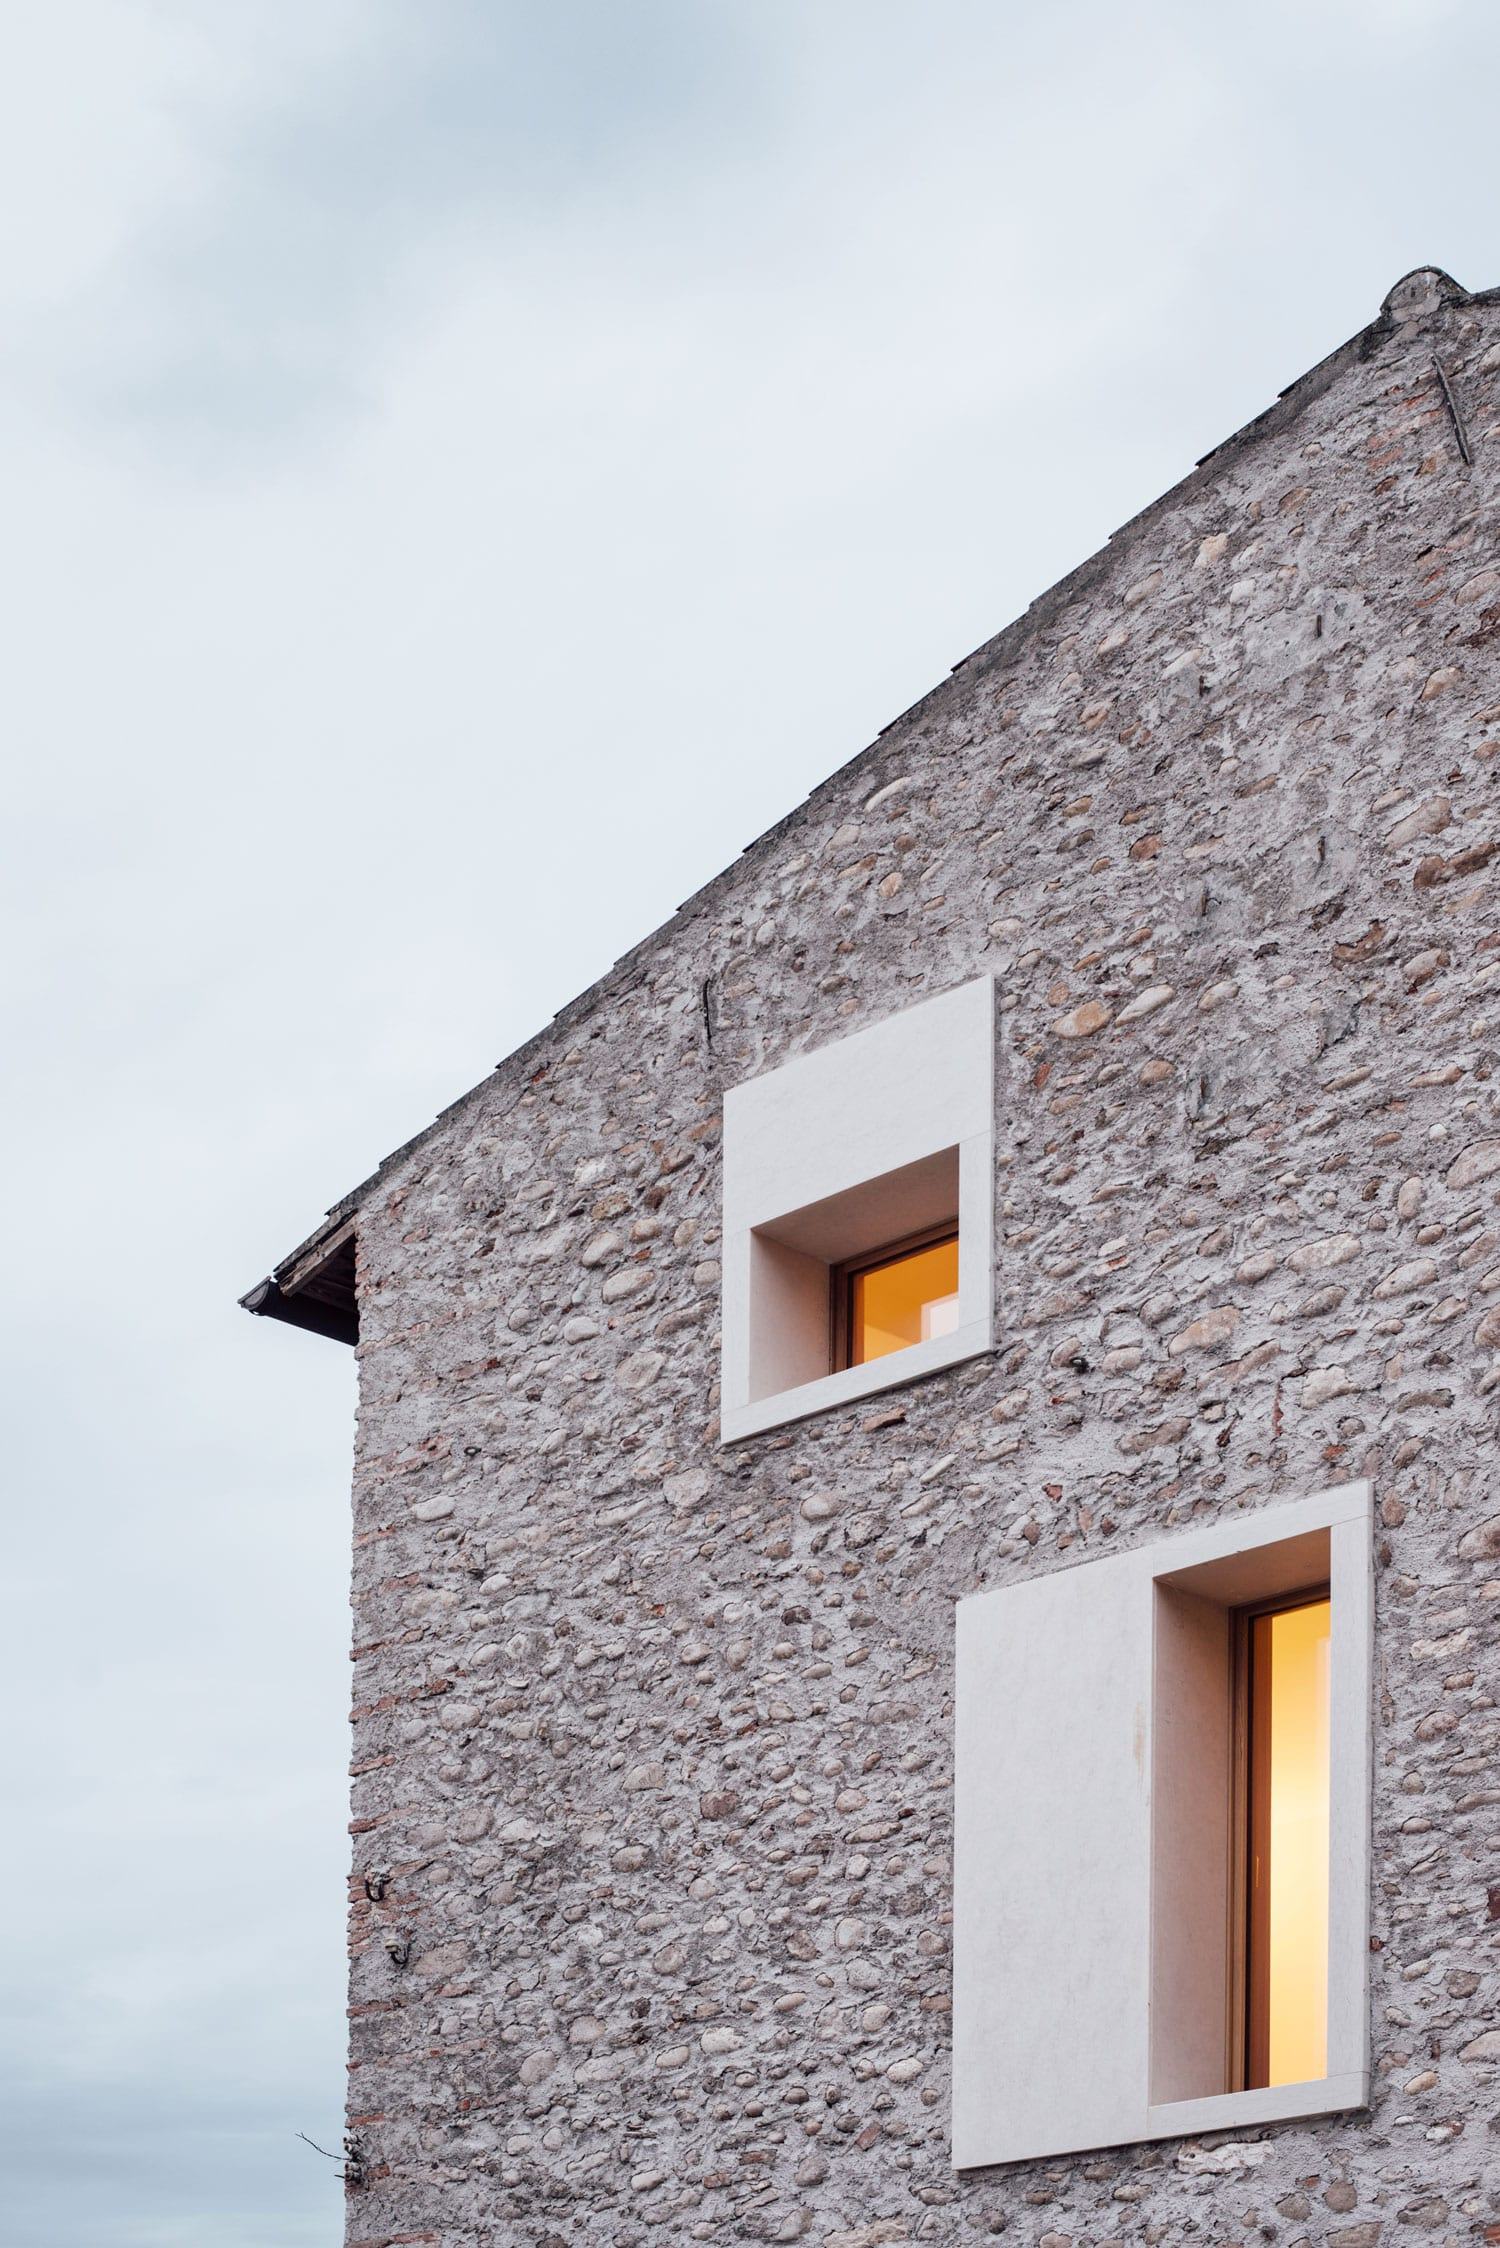 A Country Home in Chievo, Verona by Studio Wok | Yellowtrace